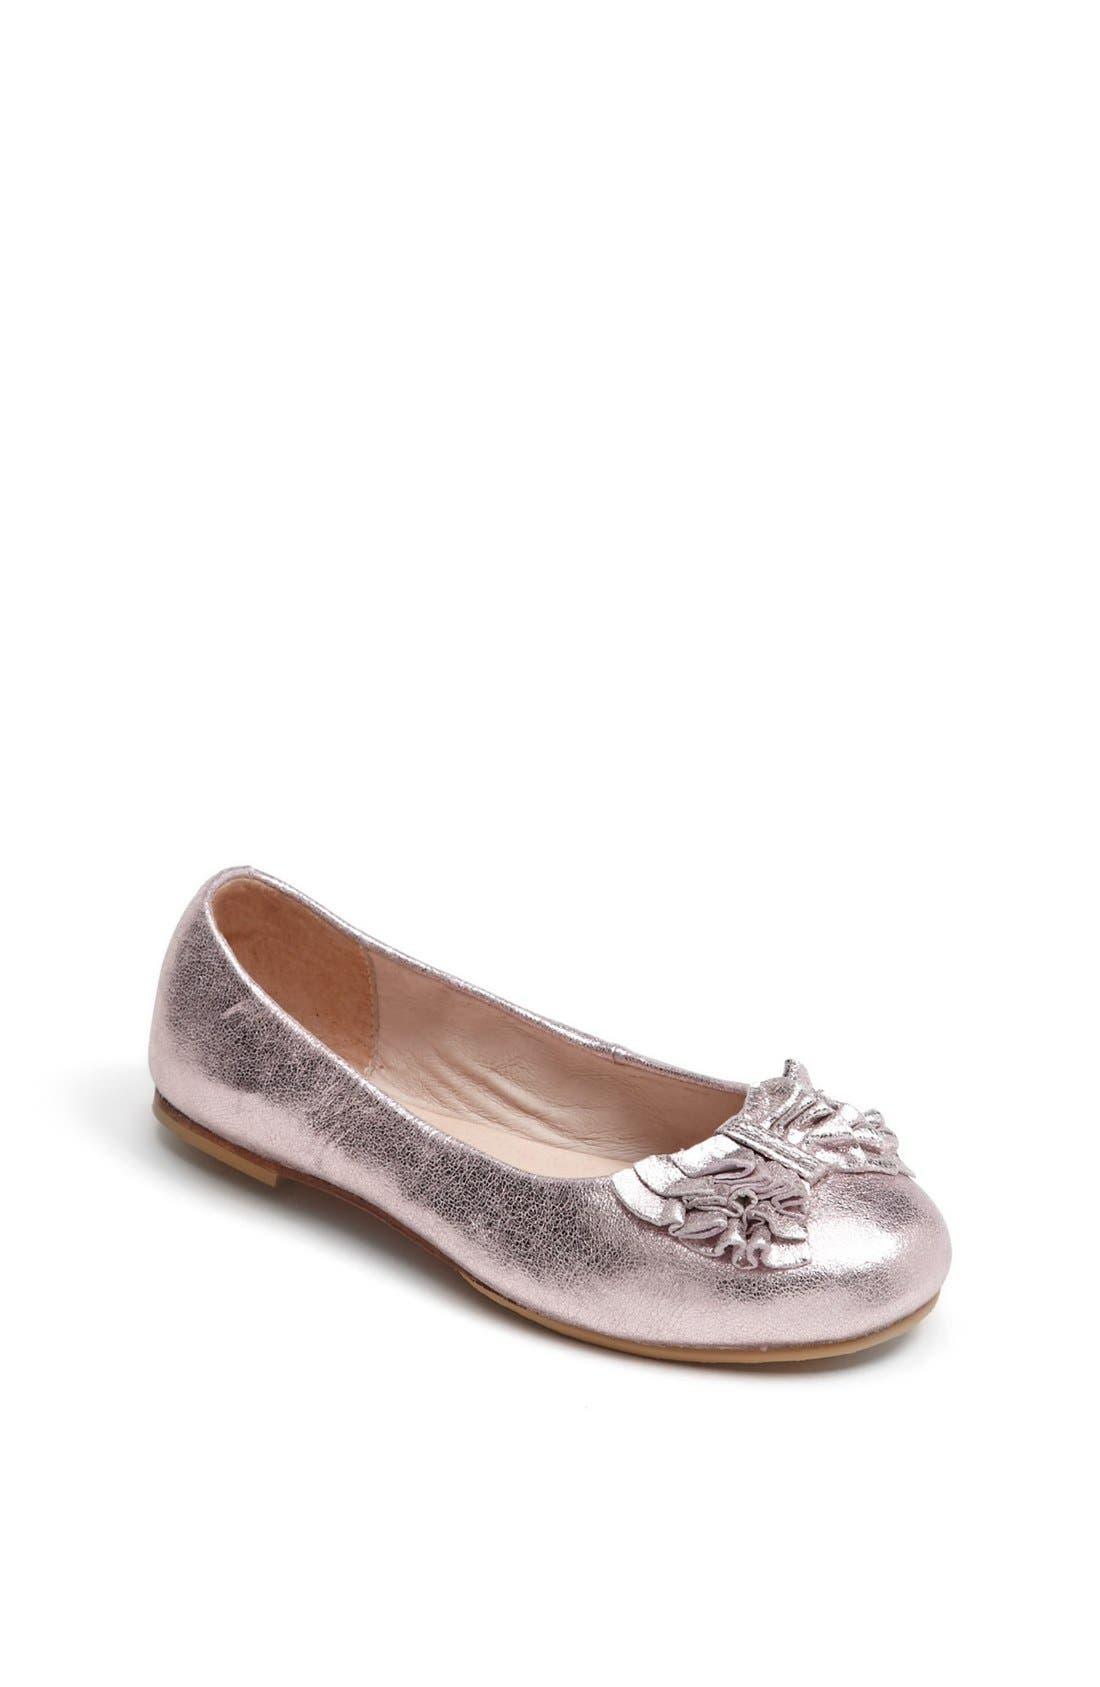 Main Image - Bloch 'Raphaela' Flat (Toddler, Little Kid & Big Kid)